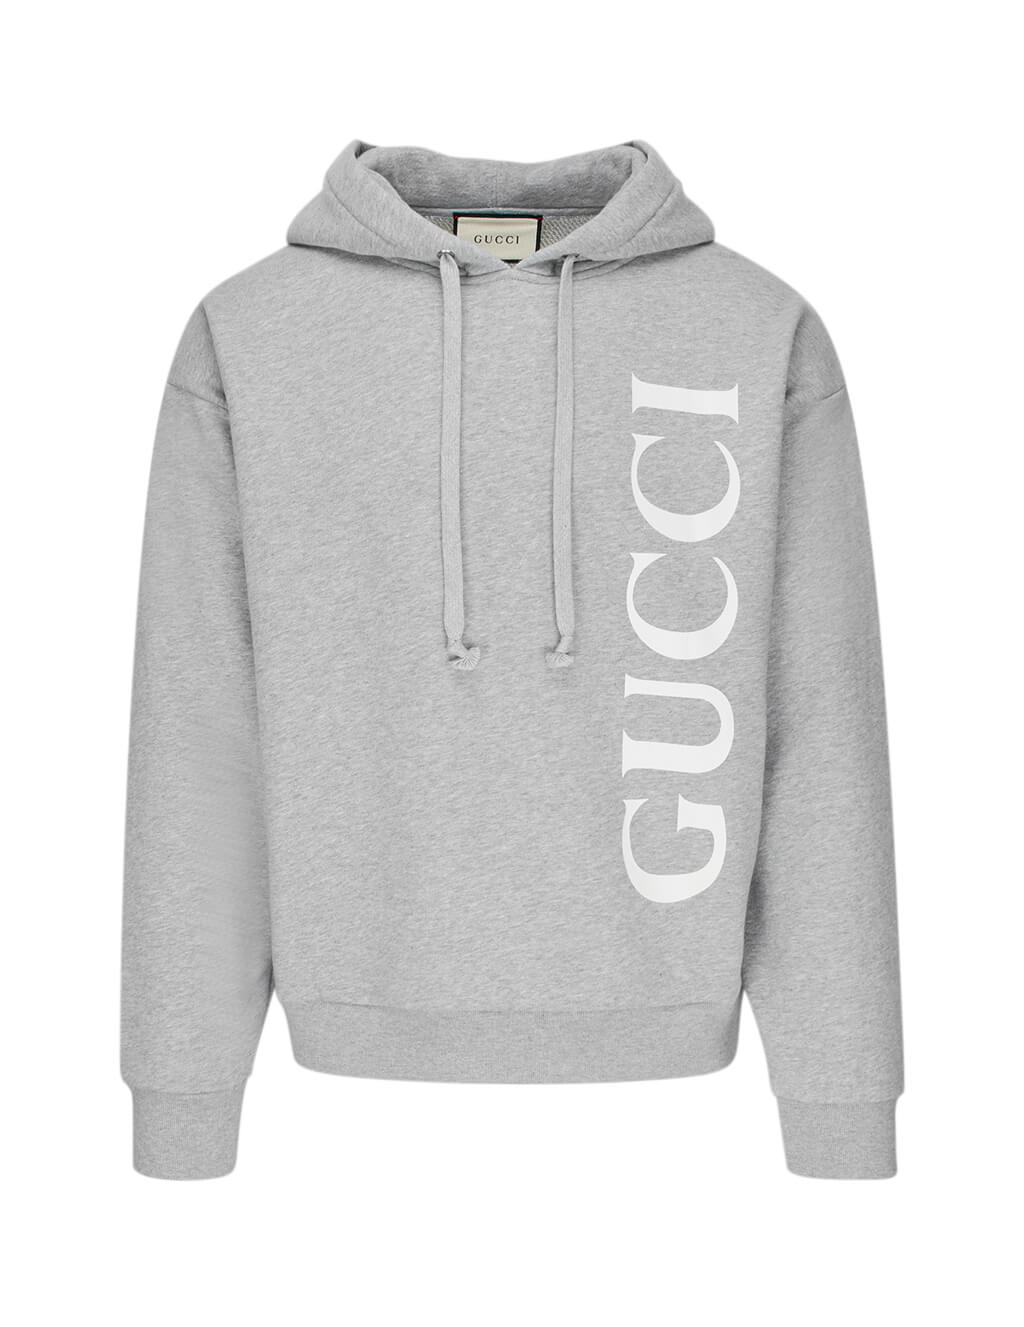 Gucci Men's Medium Grey Gucci Print Hoodie 604974xjb1d1039